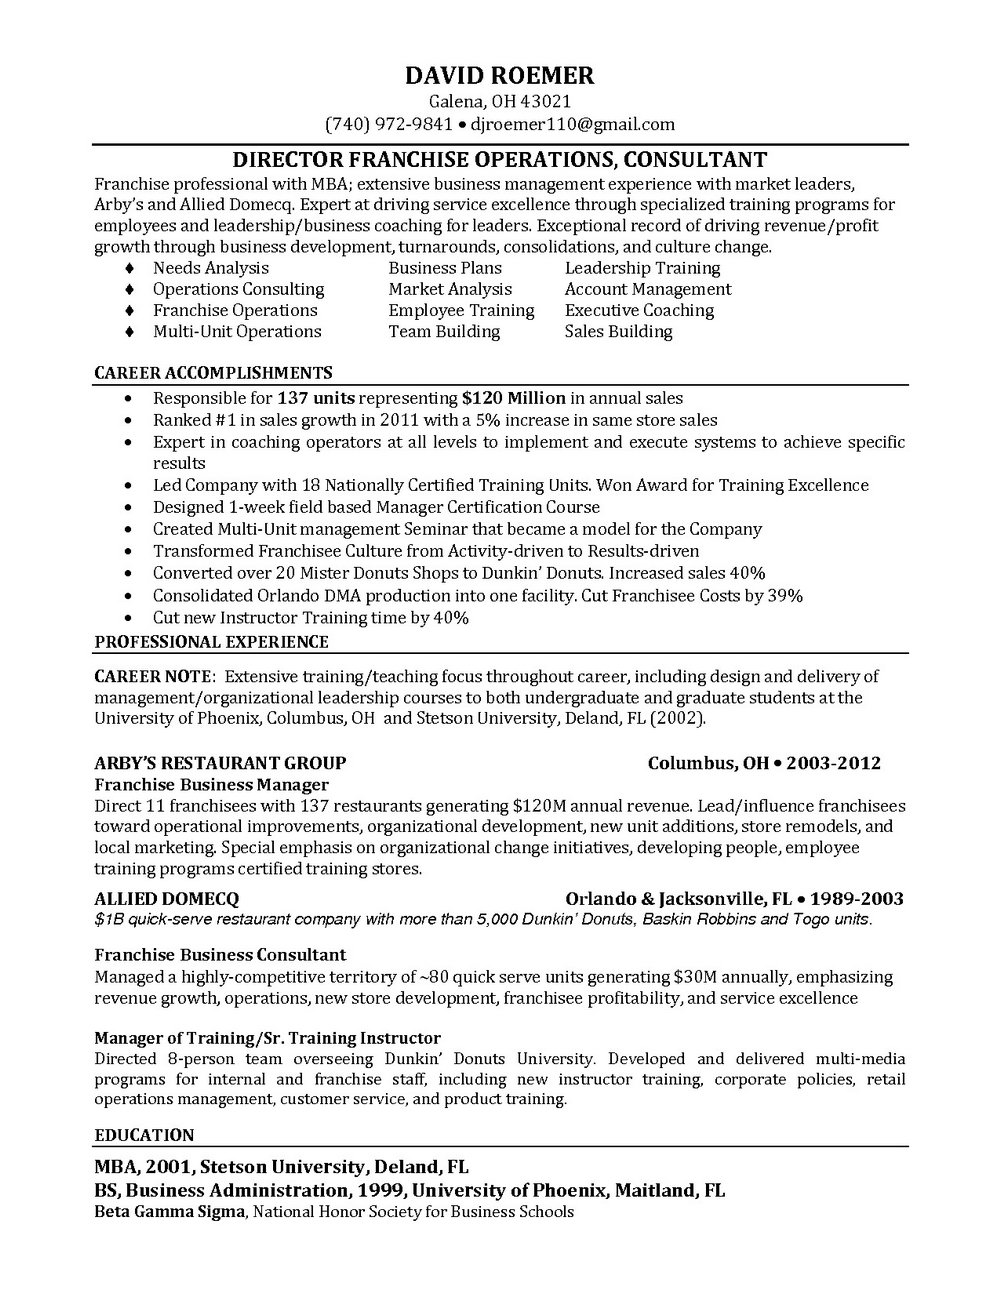 Executive Resume Writing Service Columbus Ohio